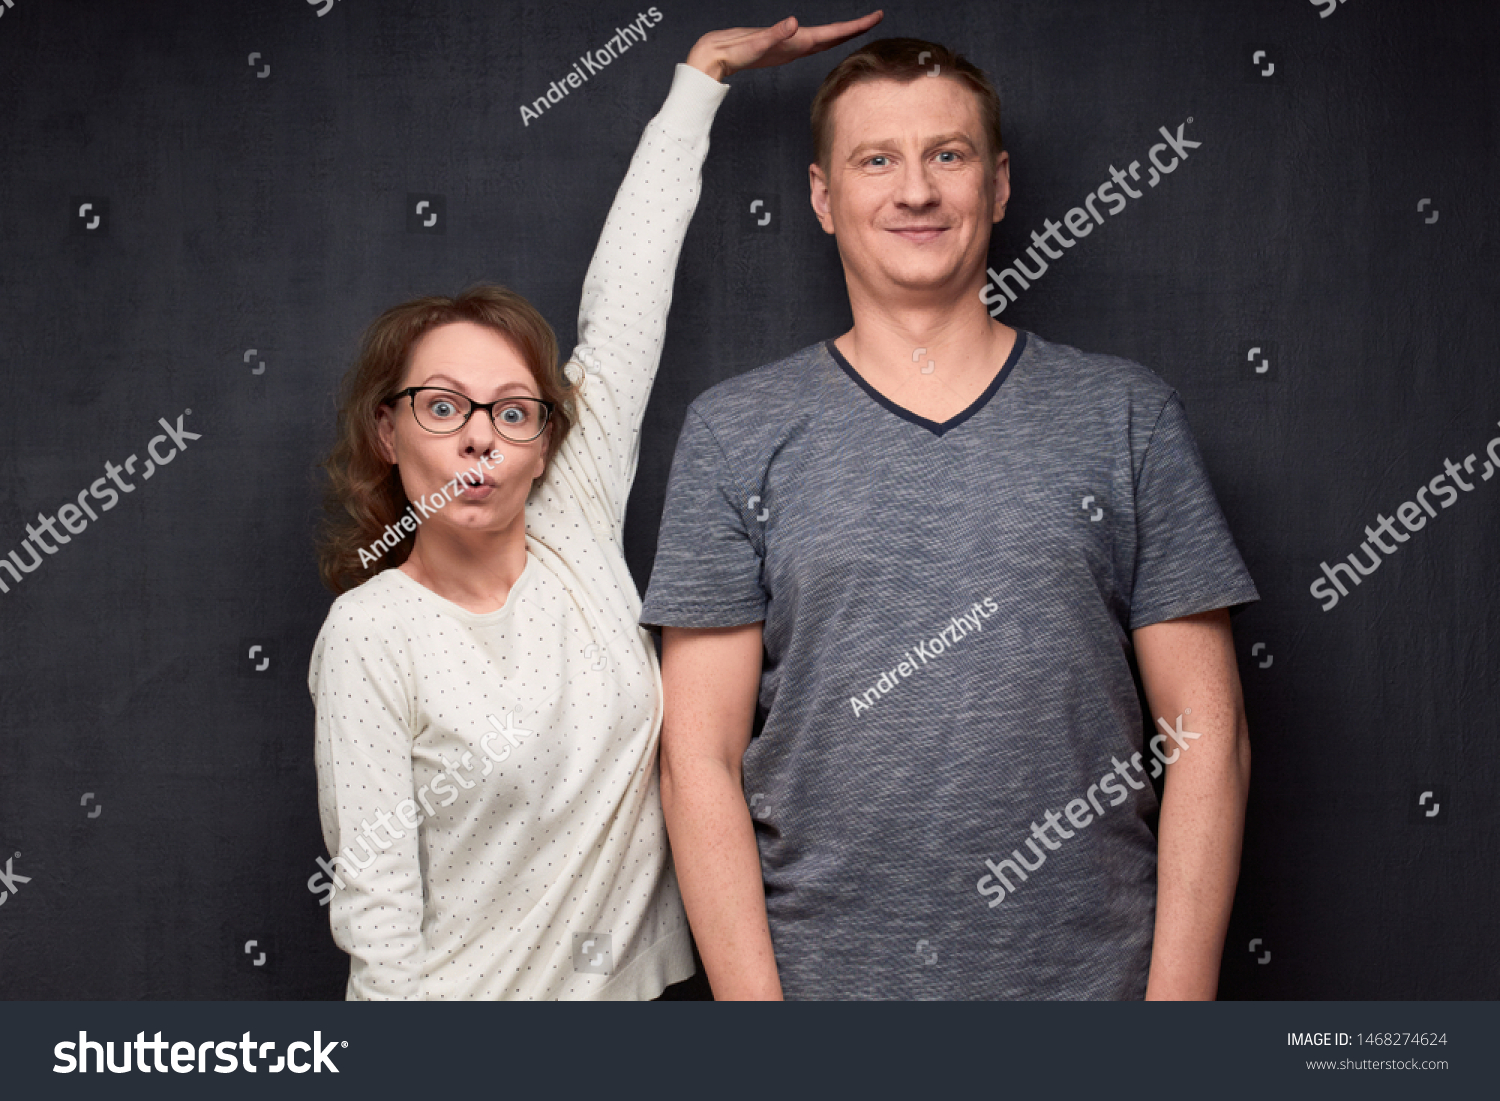 Studio waist-up shot of amazed short woman pulling up and showing with hand at height of tall man standing beside her, smiling and looking at camera, over gray background. Variety of person's heights